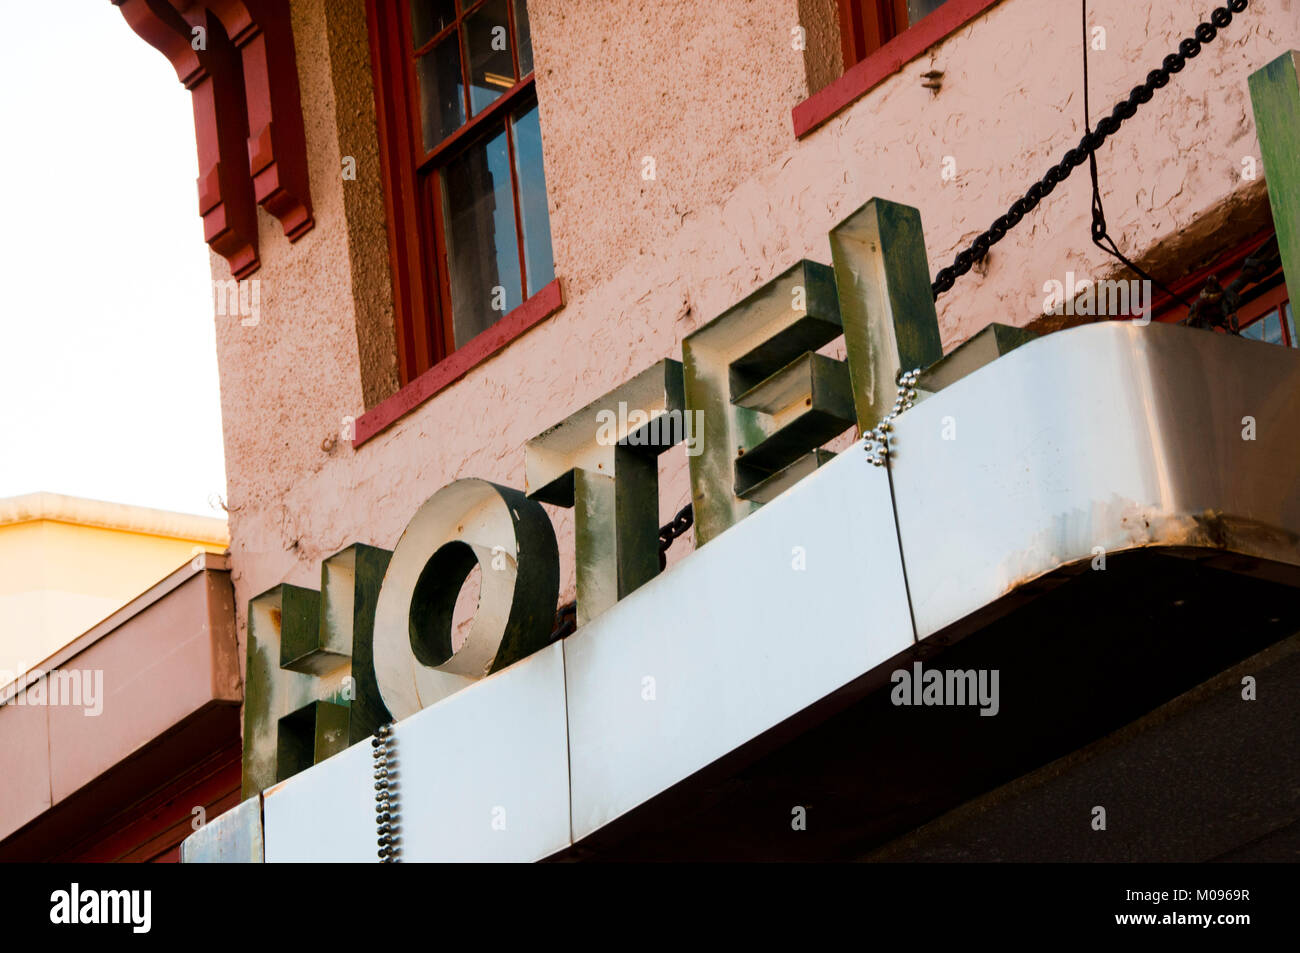 Hotel sign on exterior - Stock Image